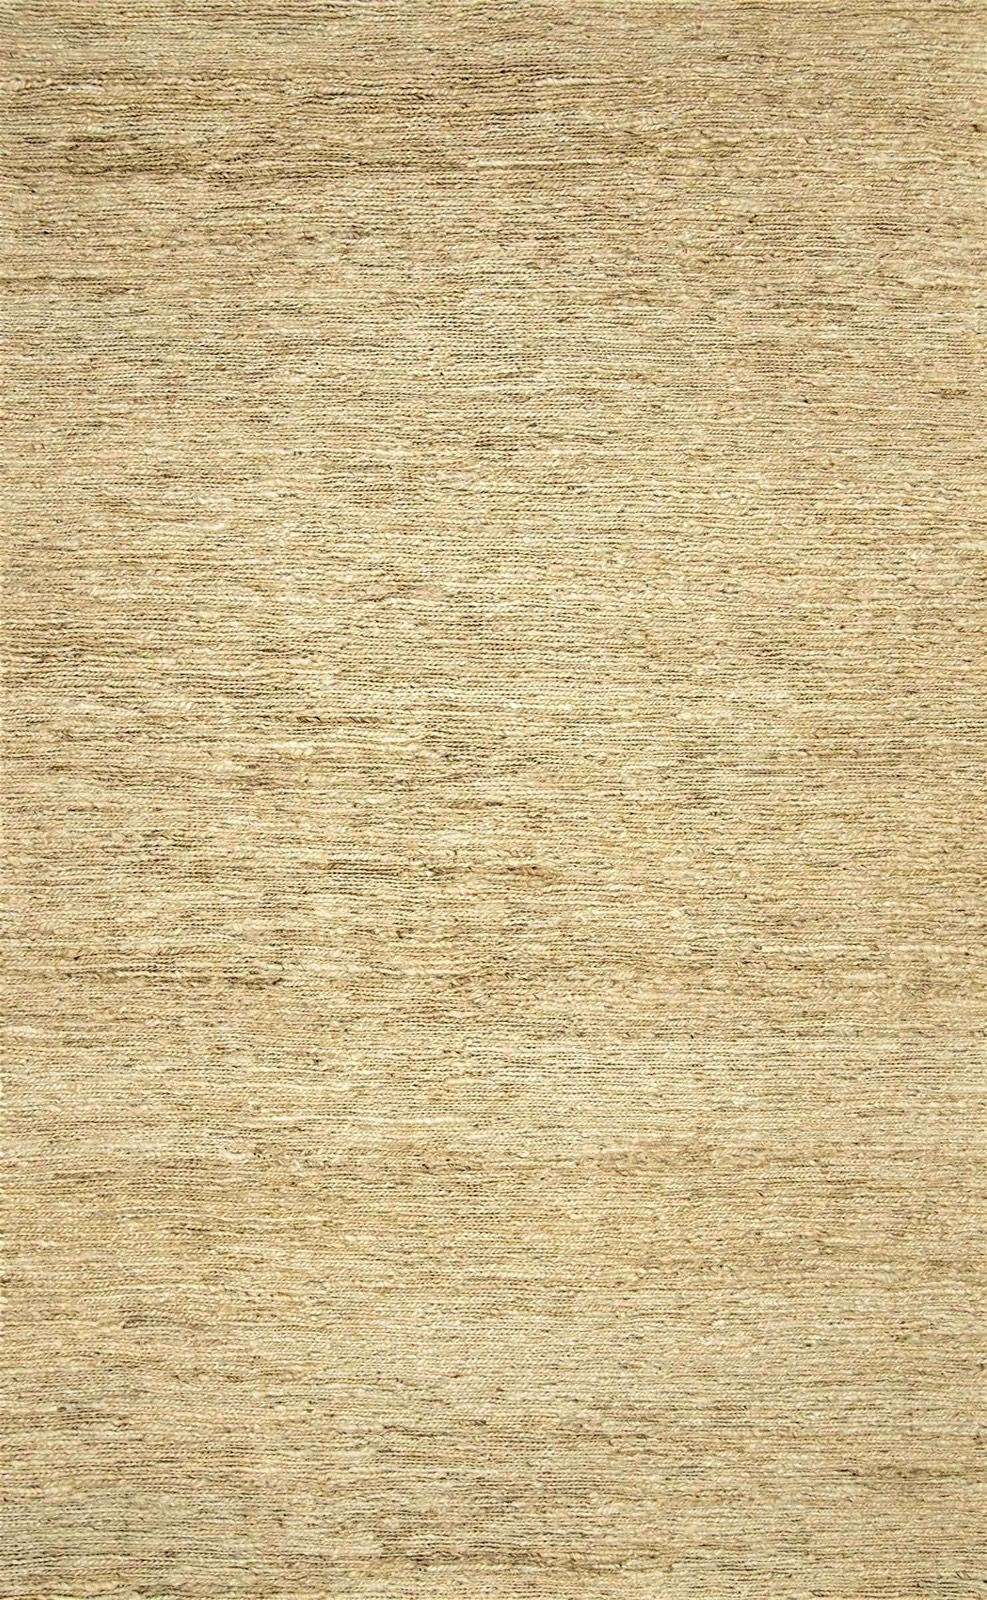 nuloom jute ashlea natural fiber area rug collection